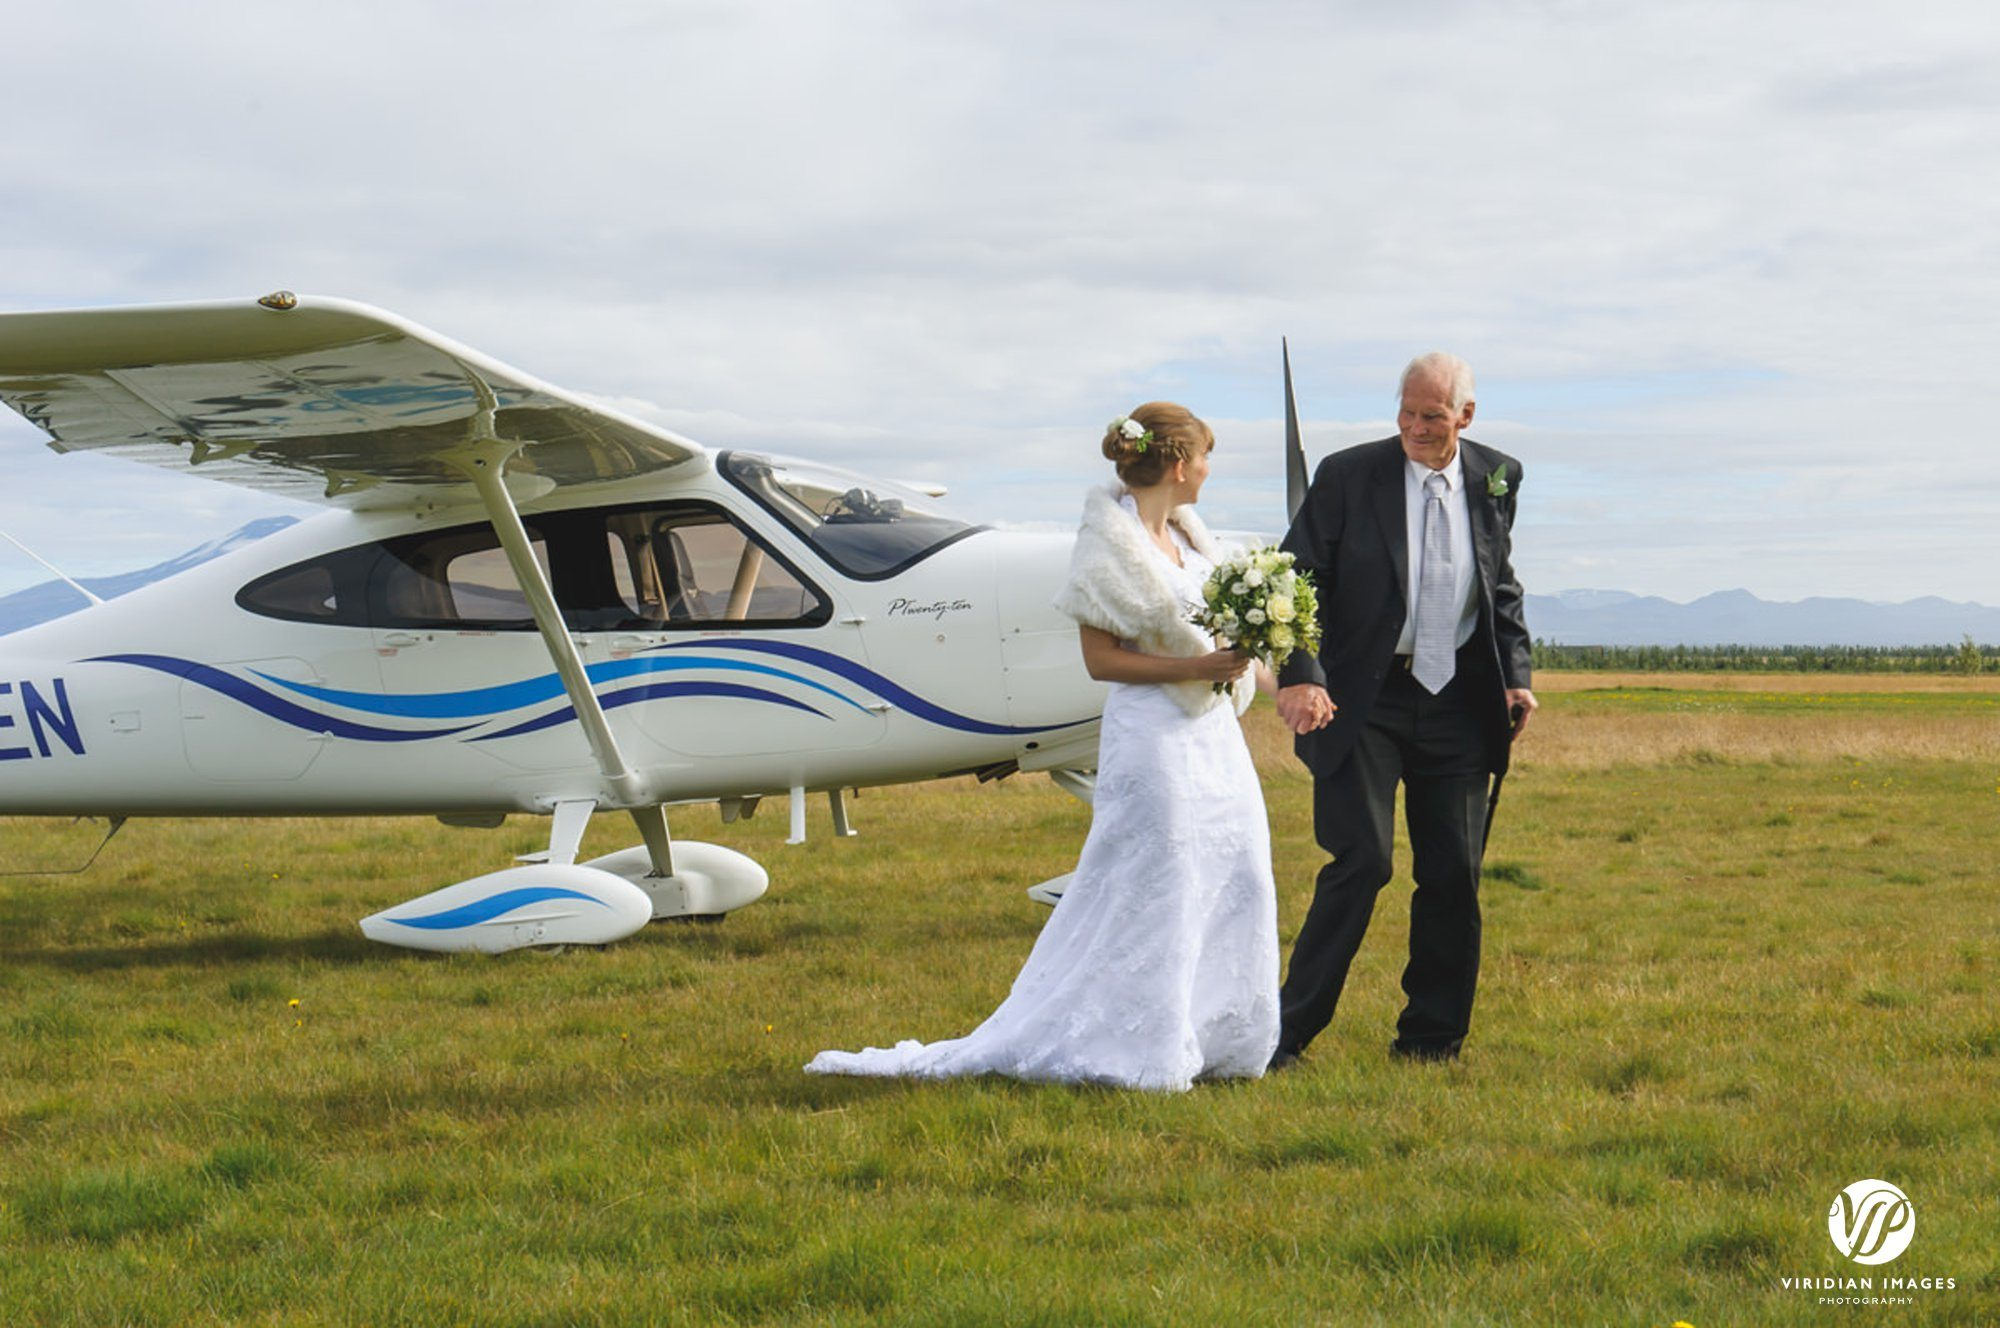 Bride and father leaving plane in Hella Icdland